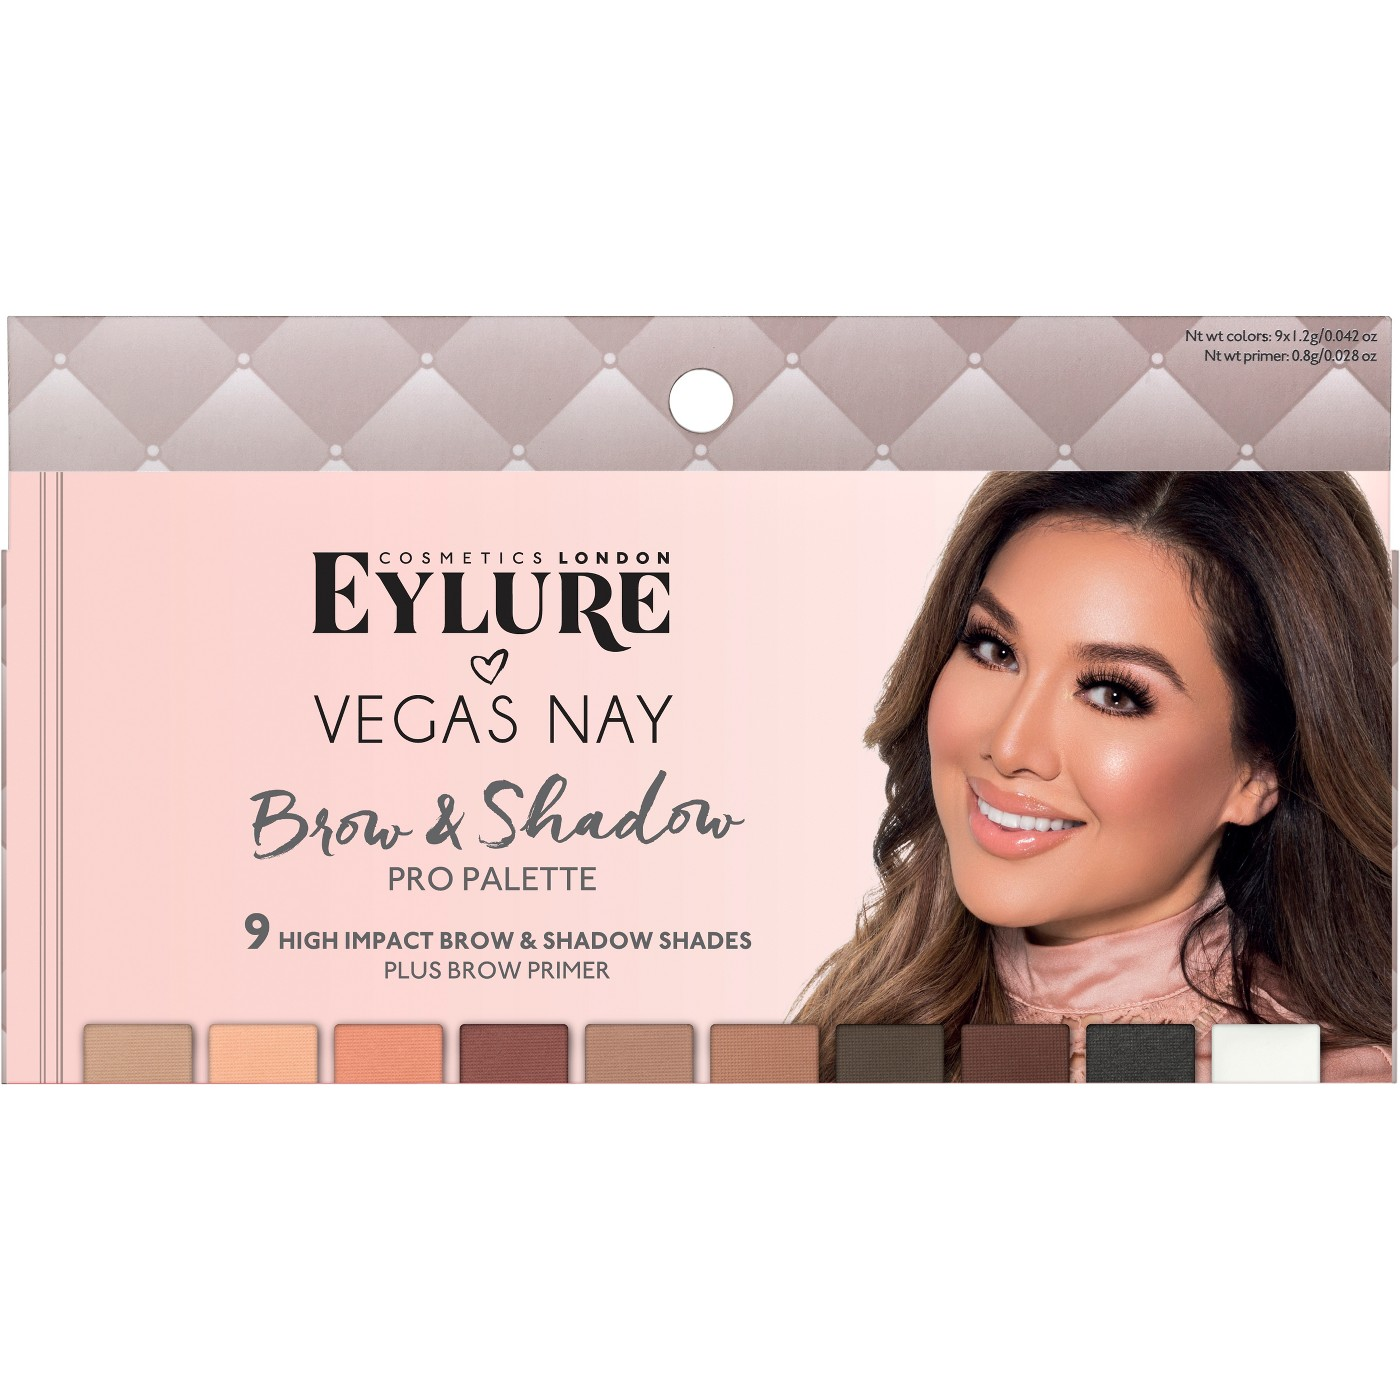 Eylure Vegas Nay Brow Powder Palette